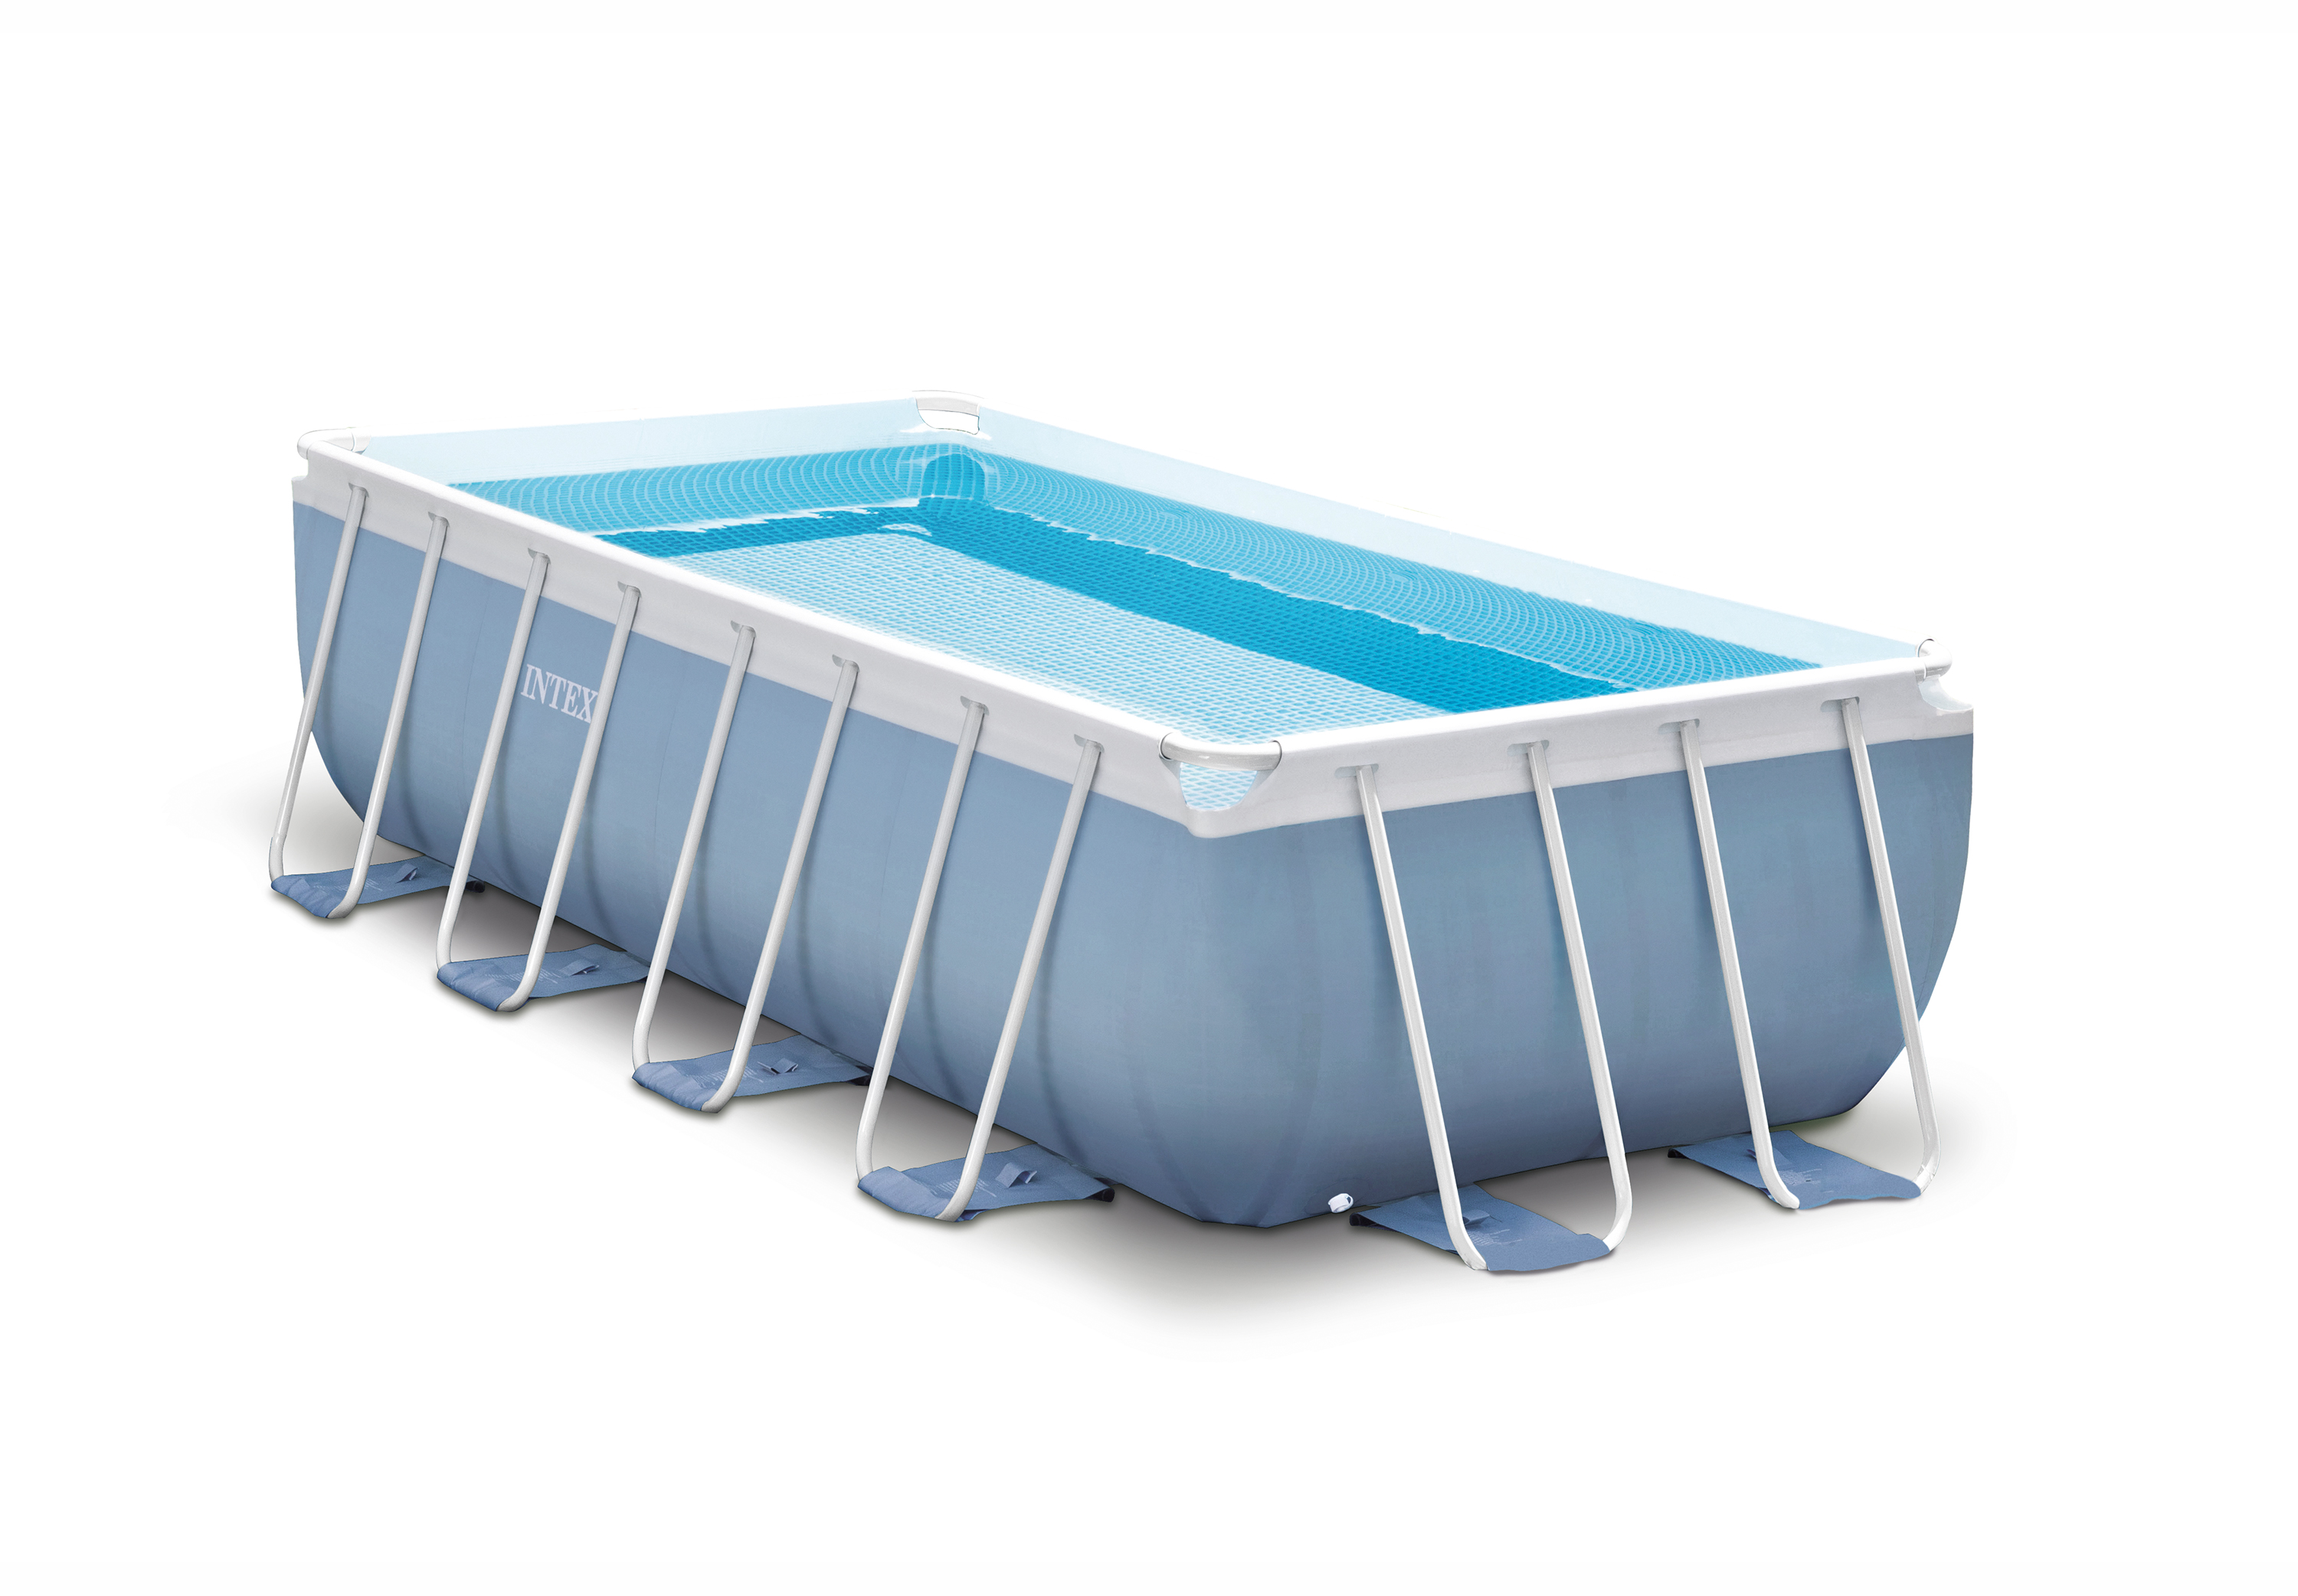 Intex 16 Feet x 8 Feet x 42 Inches Prism Frame Rectangular Swimming Pool Set by Intex